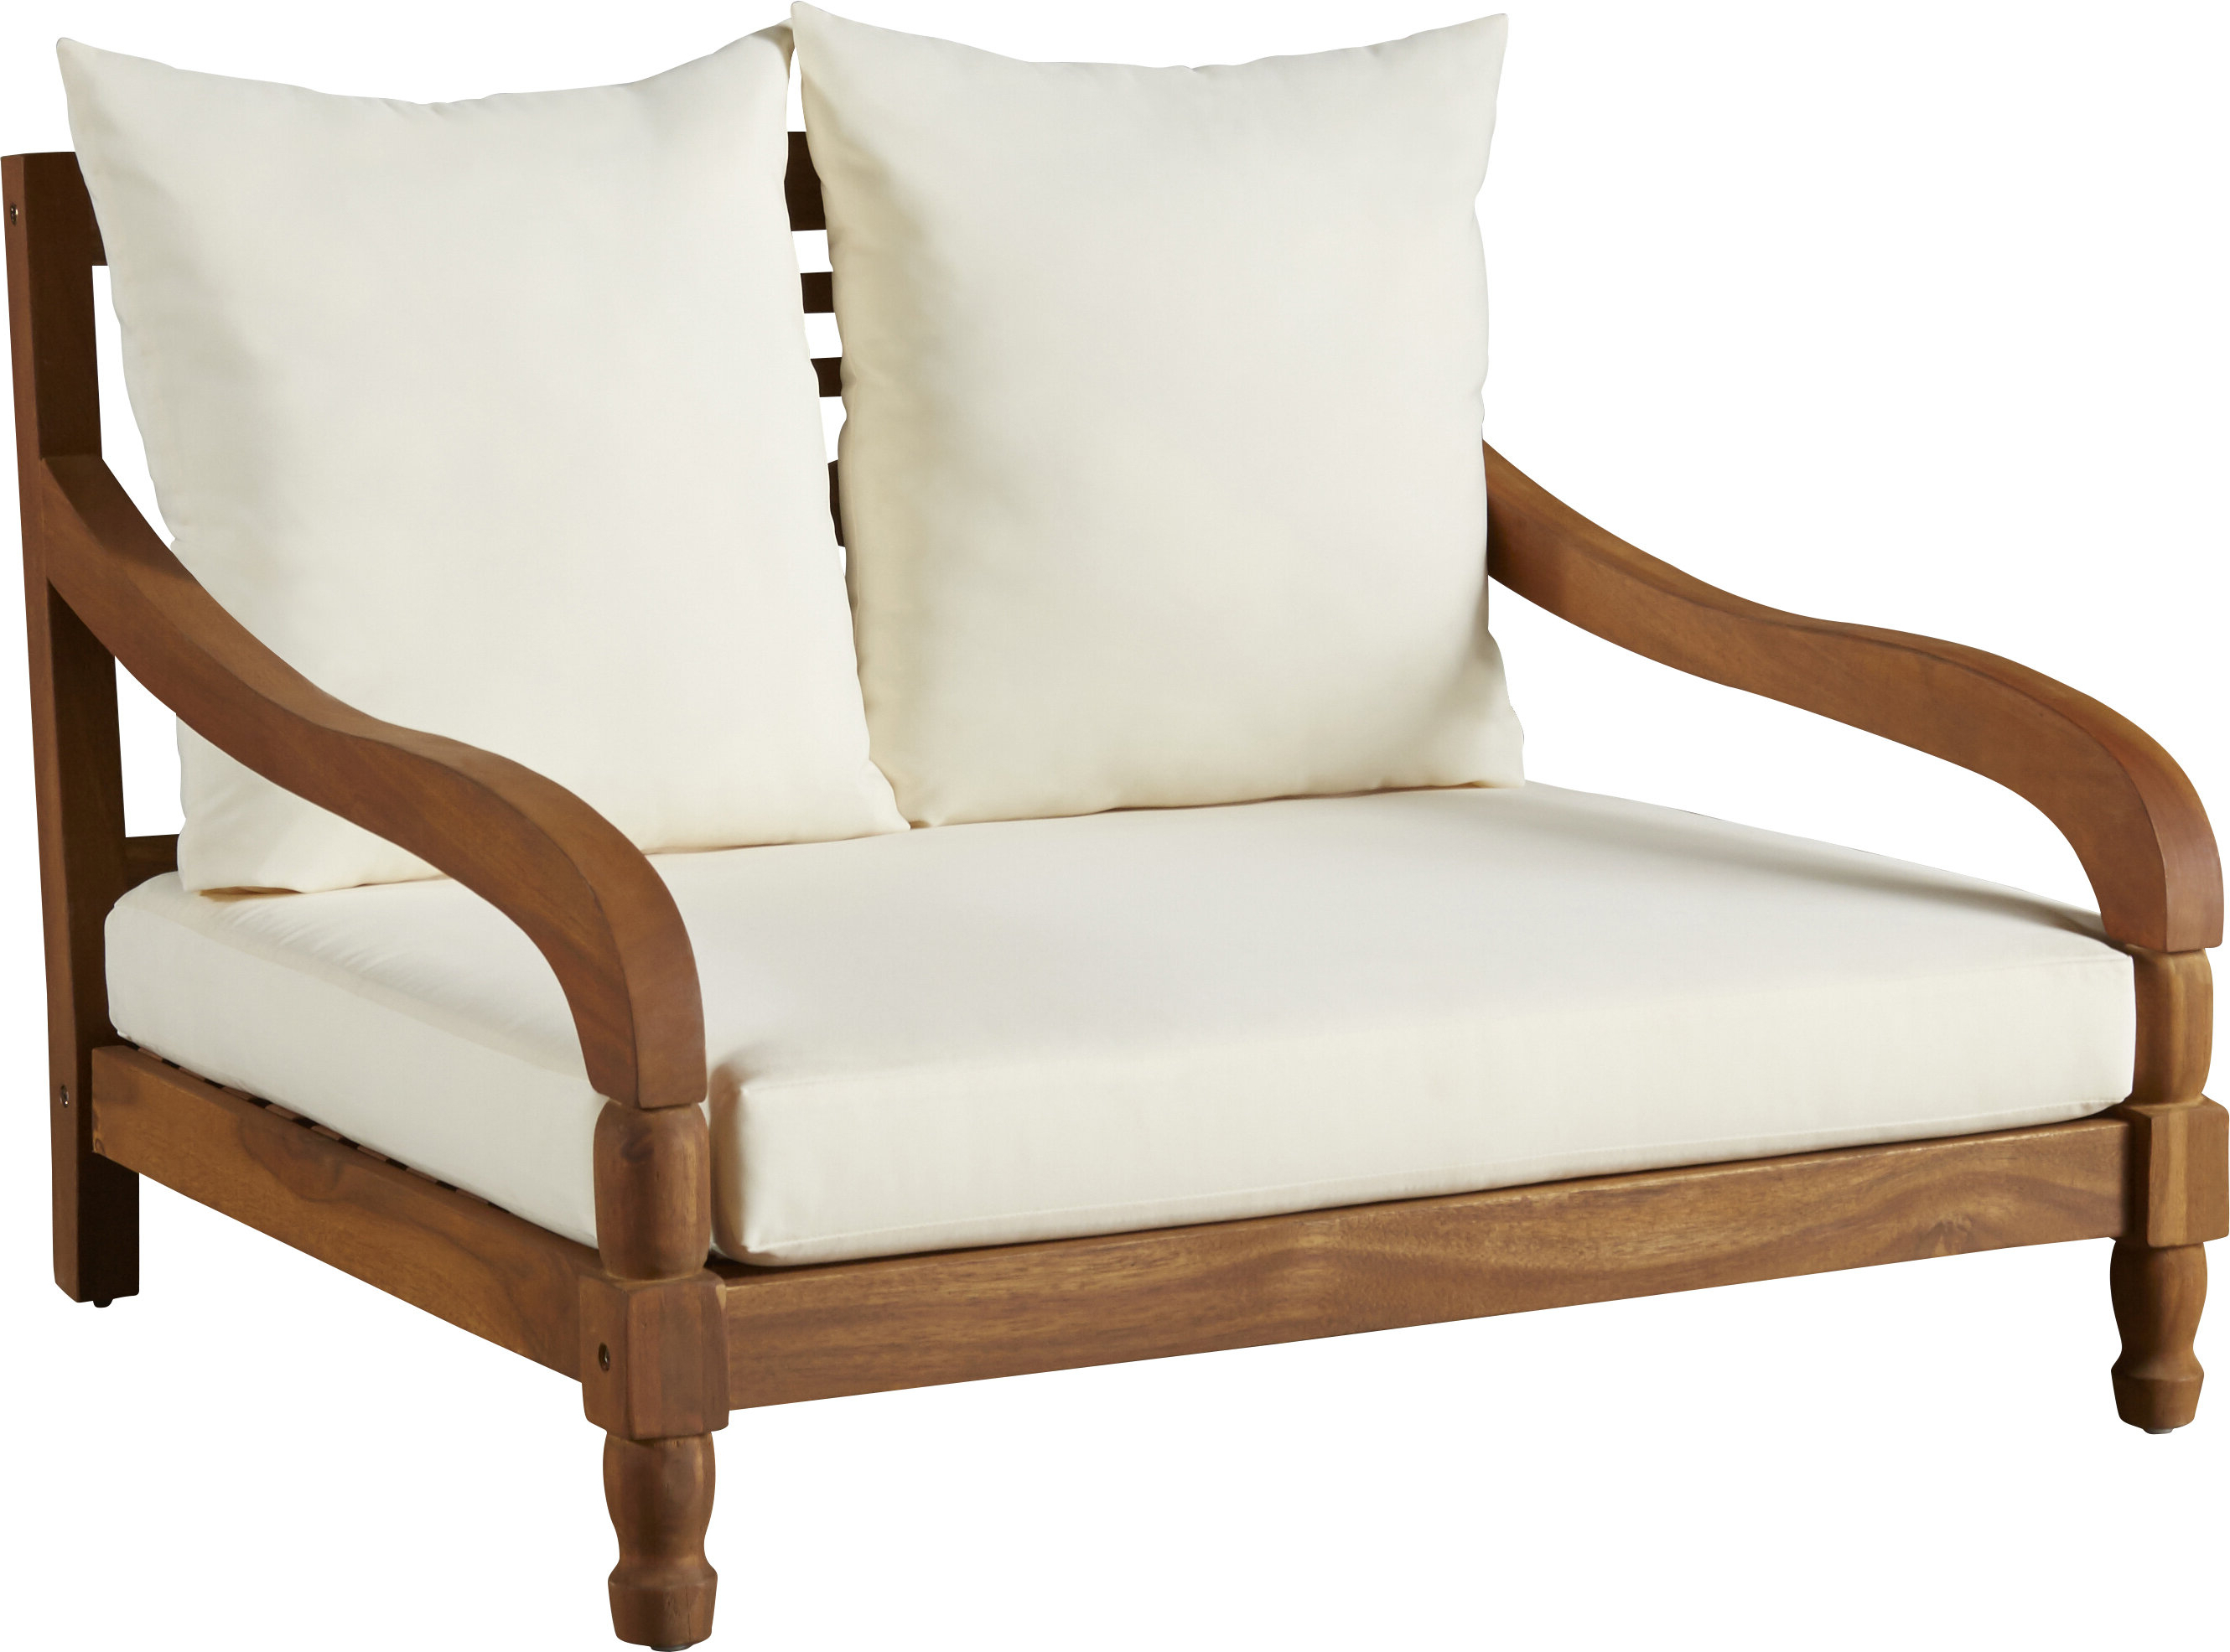 Oudoor Modern Acacia Wood Chaise Lounges With Cushion With Regard To Well Known Wiest Double Chaise Lounge With Cushion (Gallery 25 of 25)